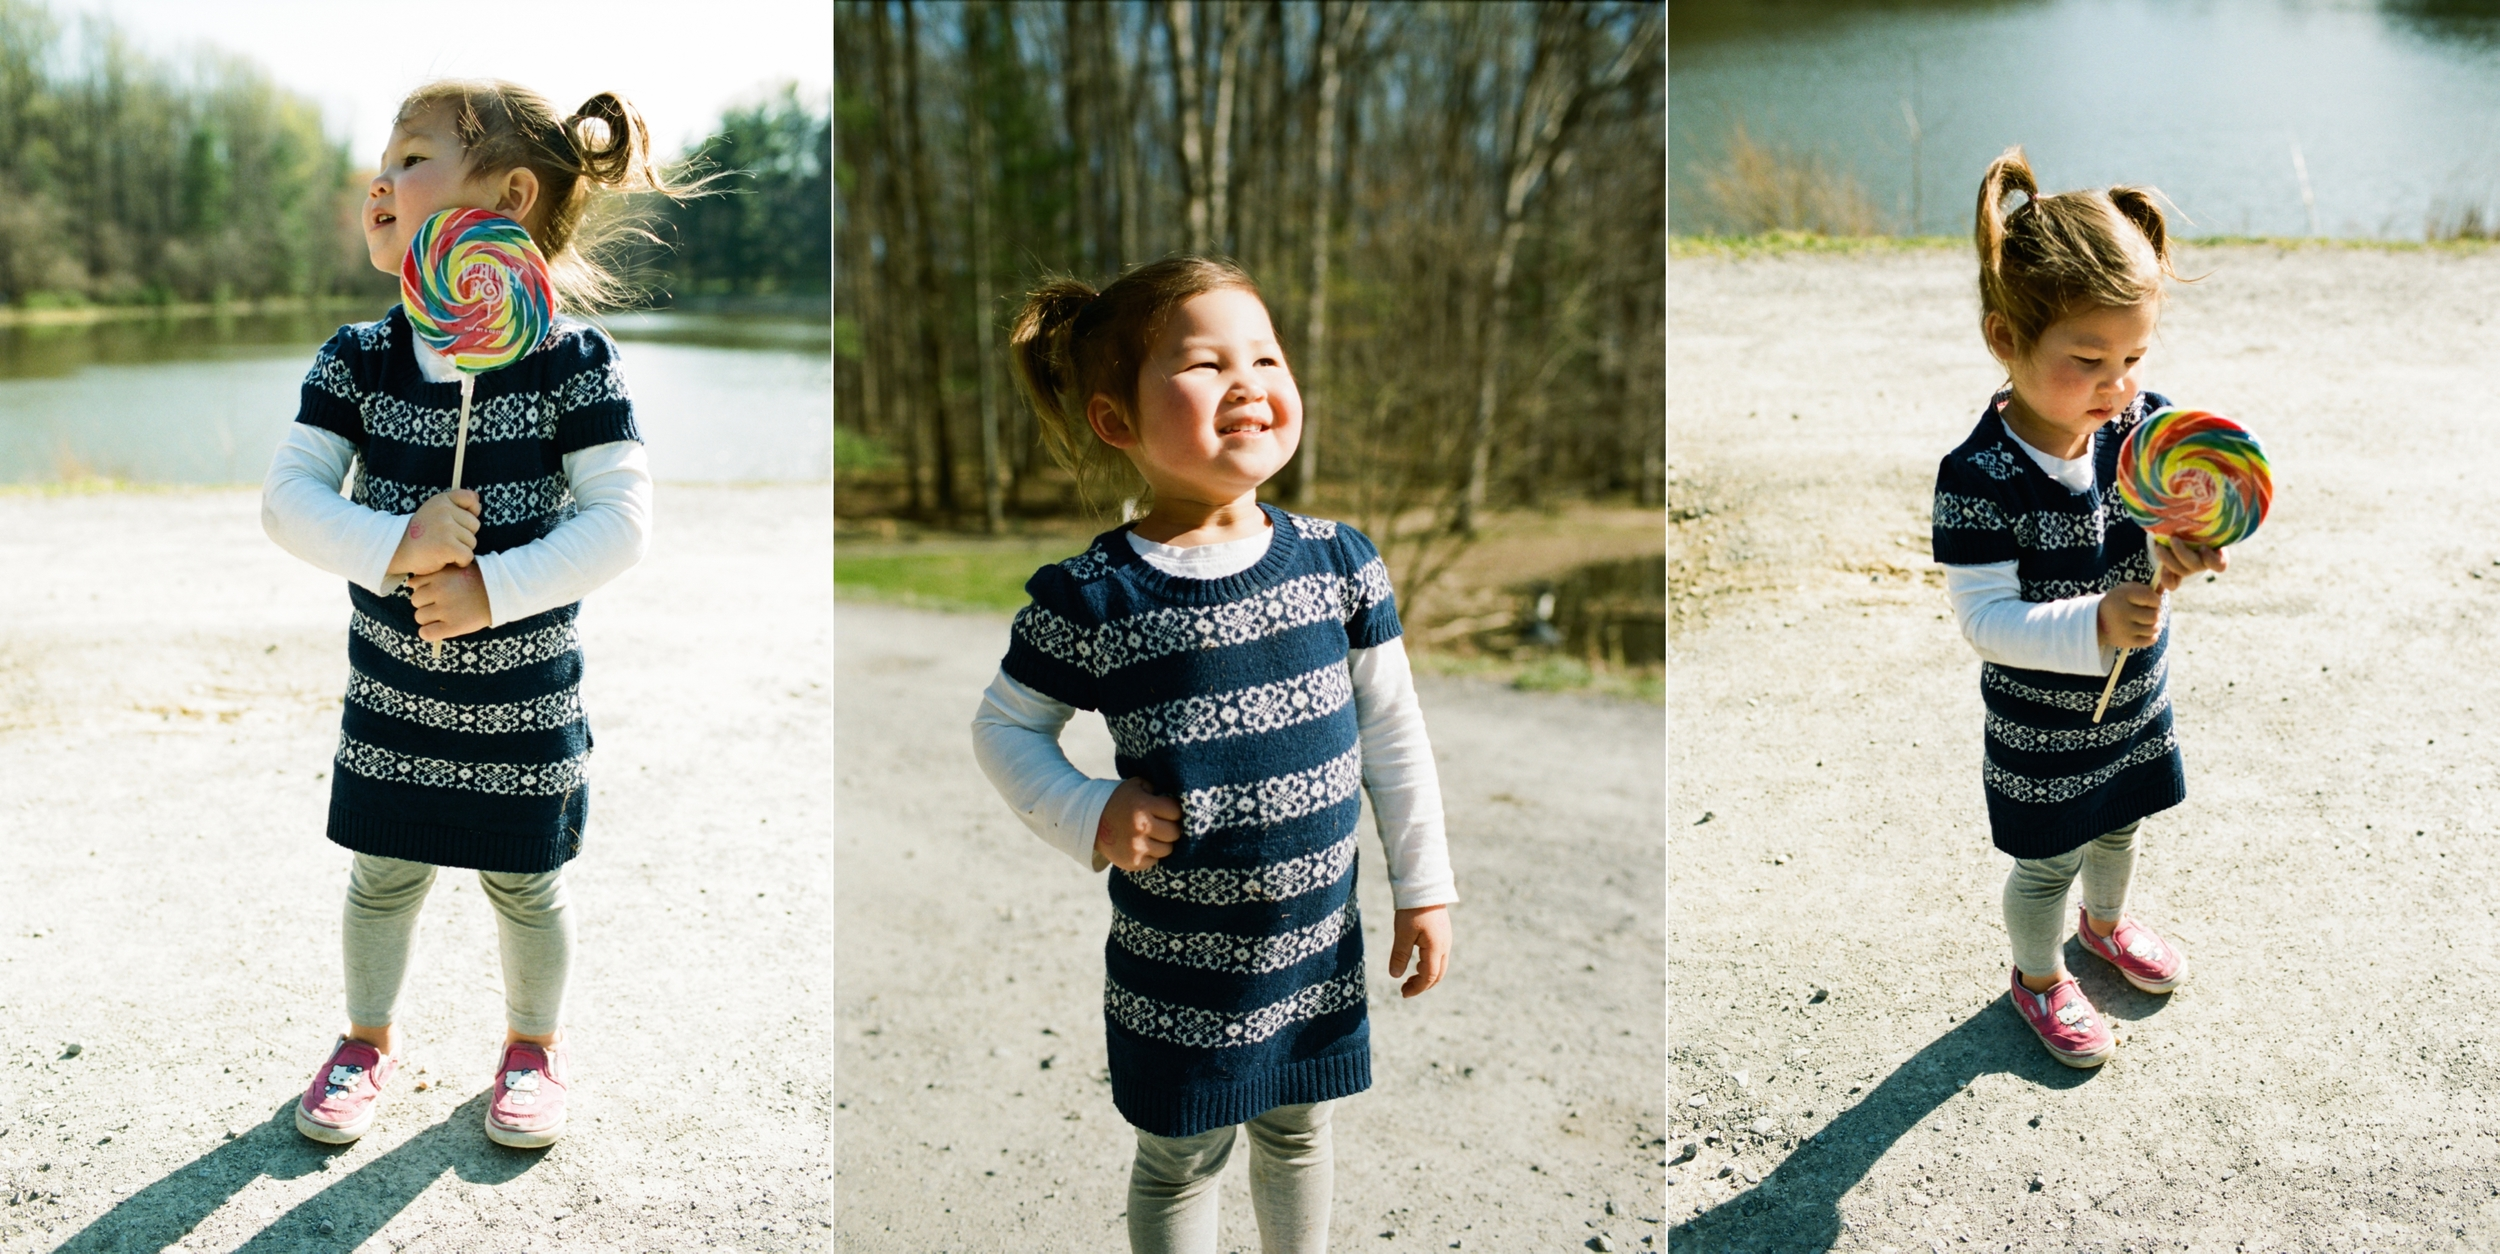 REMINDER TO SELF: I will NEVER push Portra 400 in 35mm ever again.